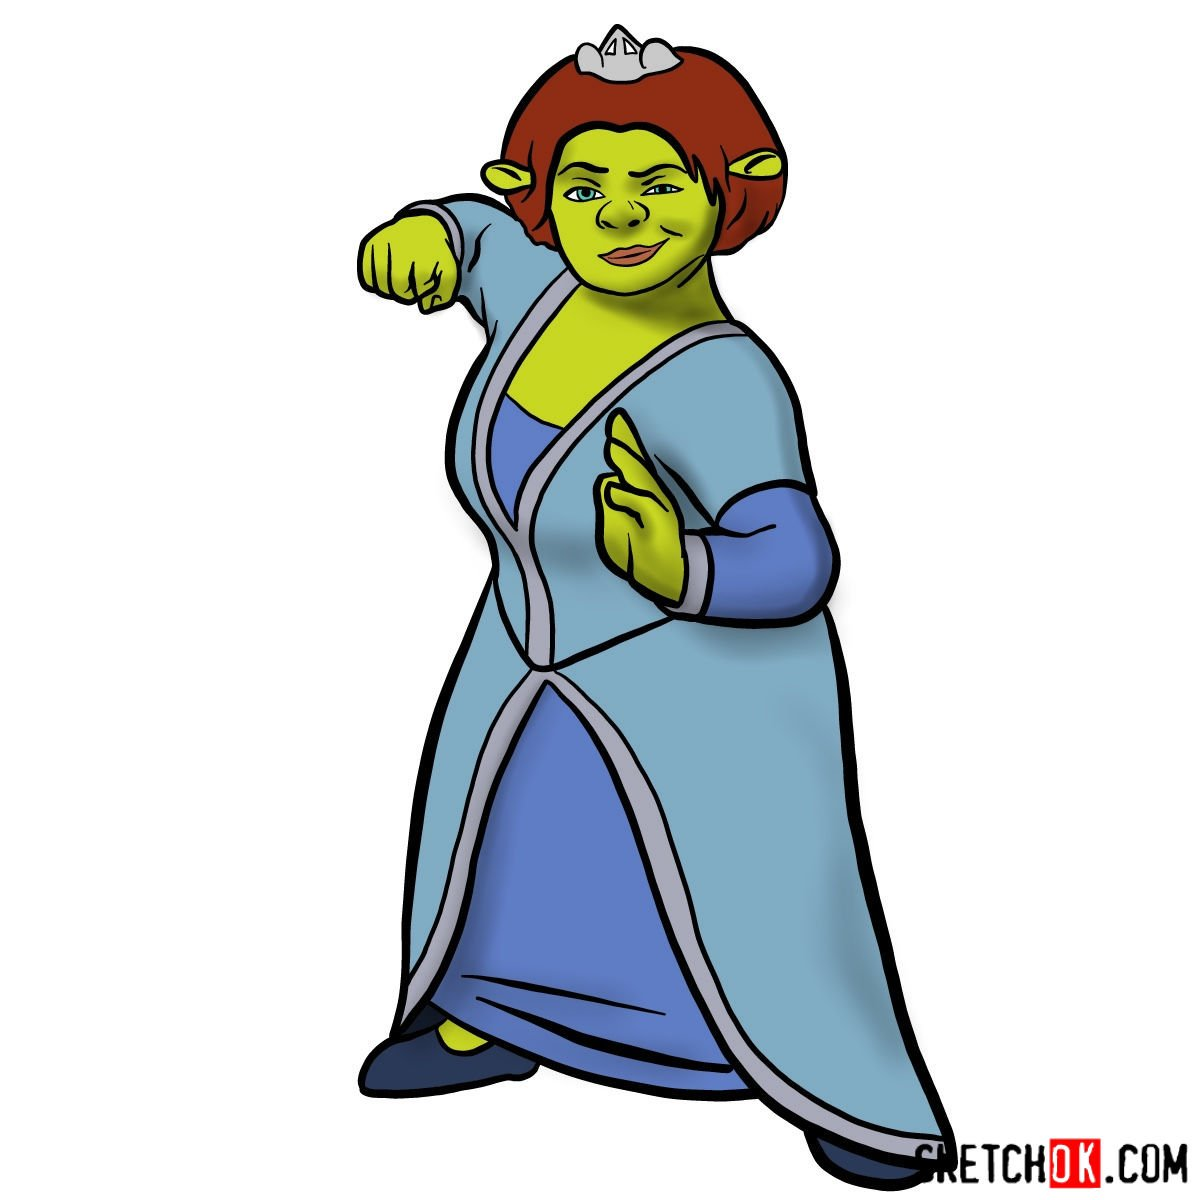 How to draw Princess Fiona